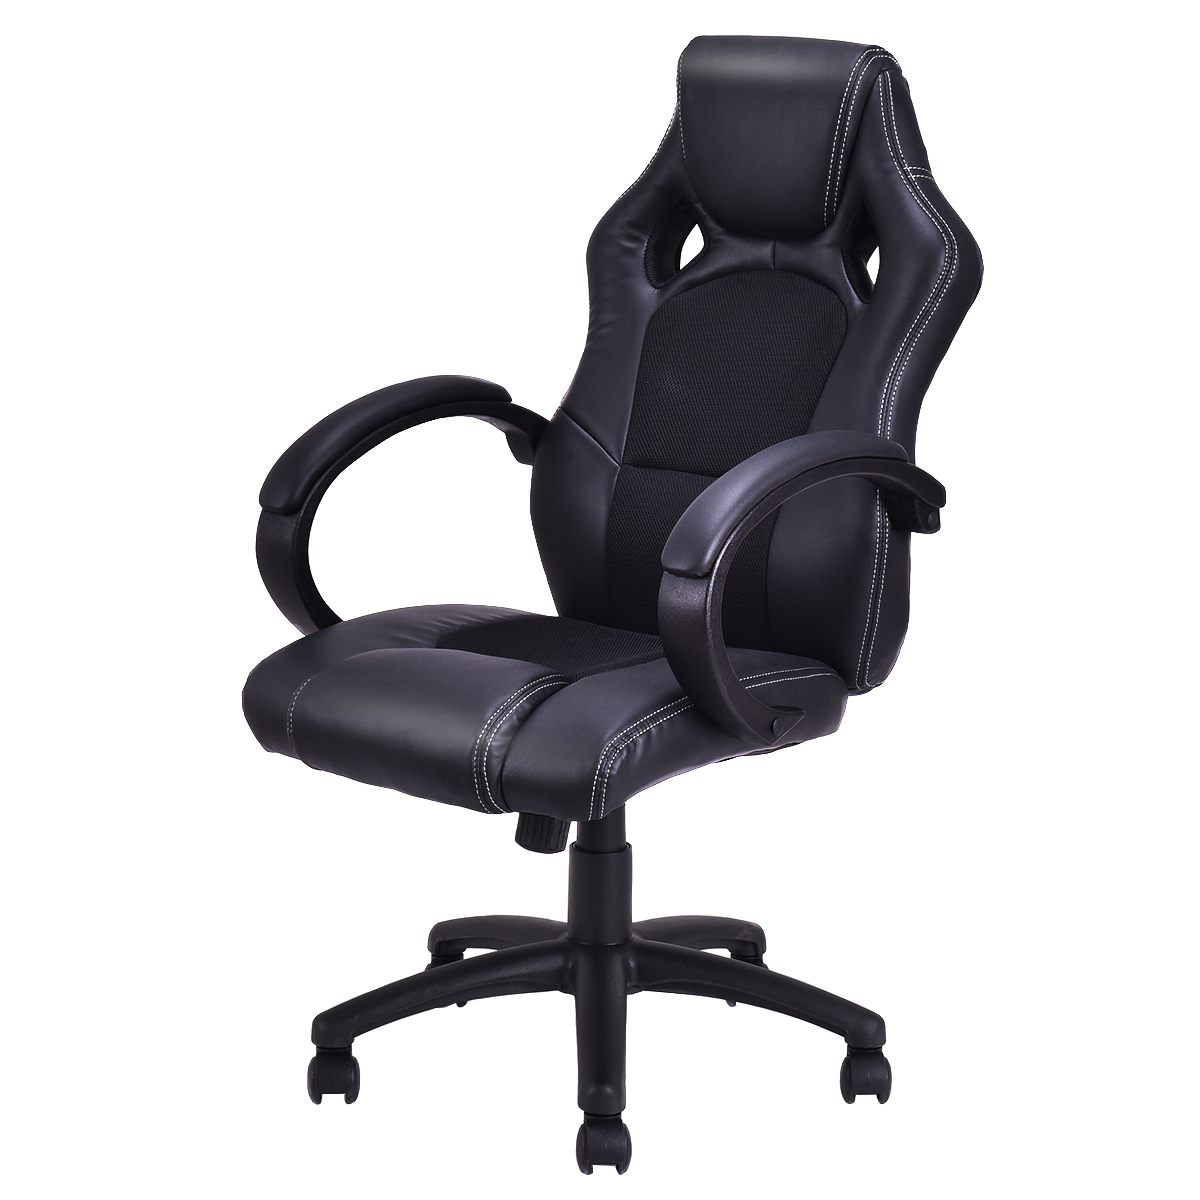 High-Back Race Car Style Bucket Seat Gaming Chair